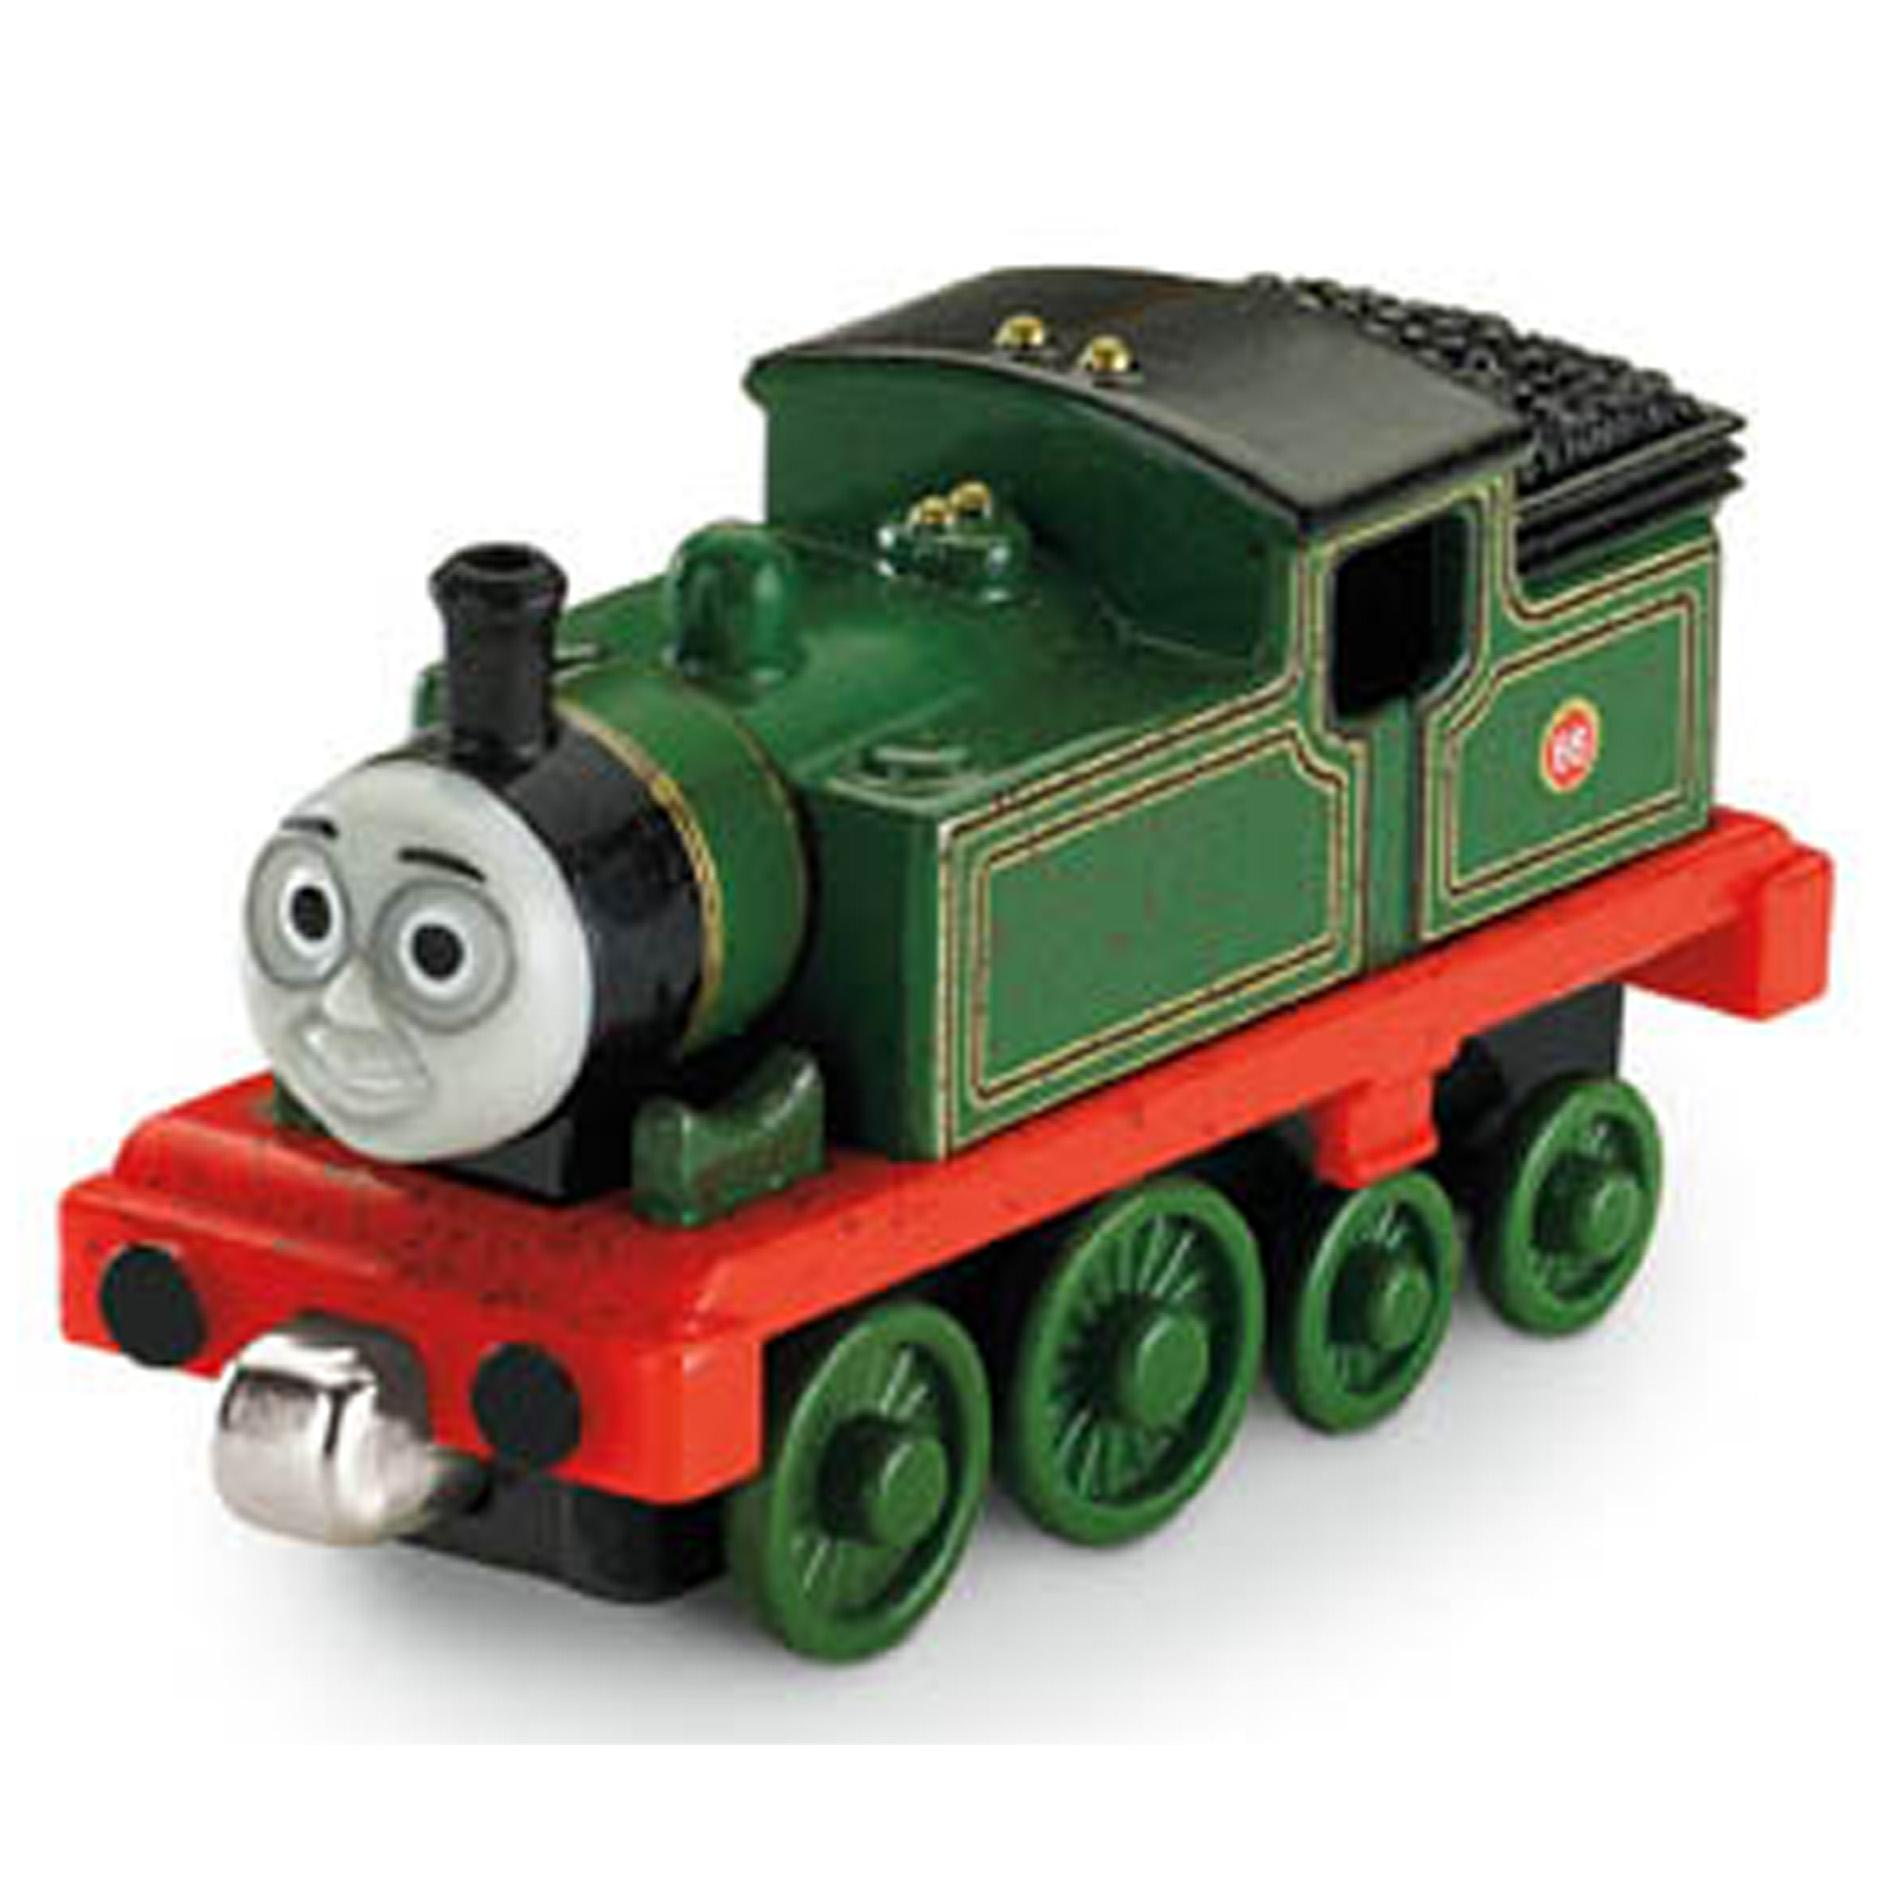 Fisher Price Thomas and Friends Small 'Whiff' Toy Train Engine